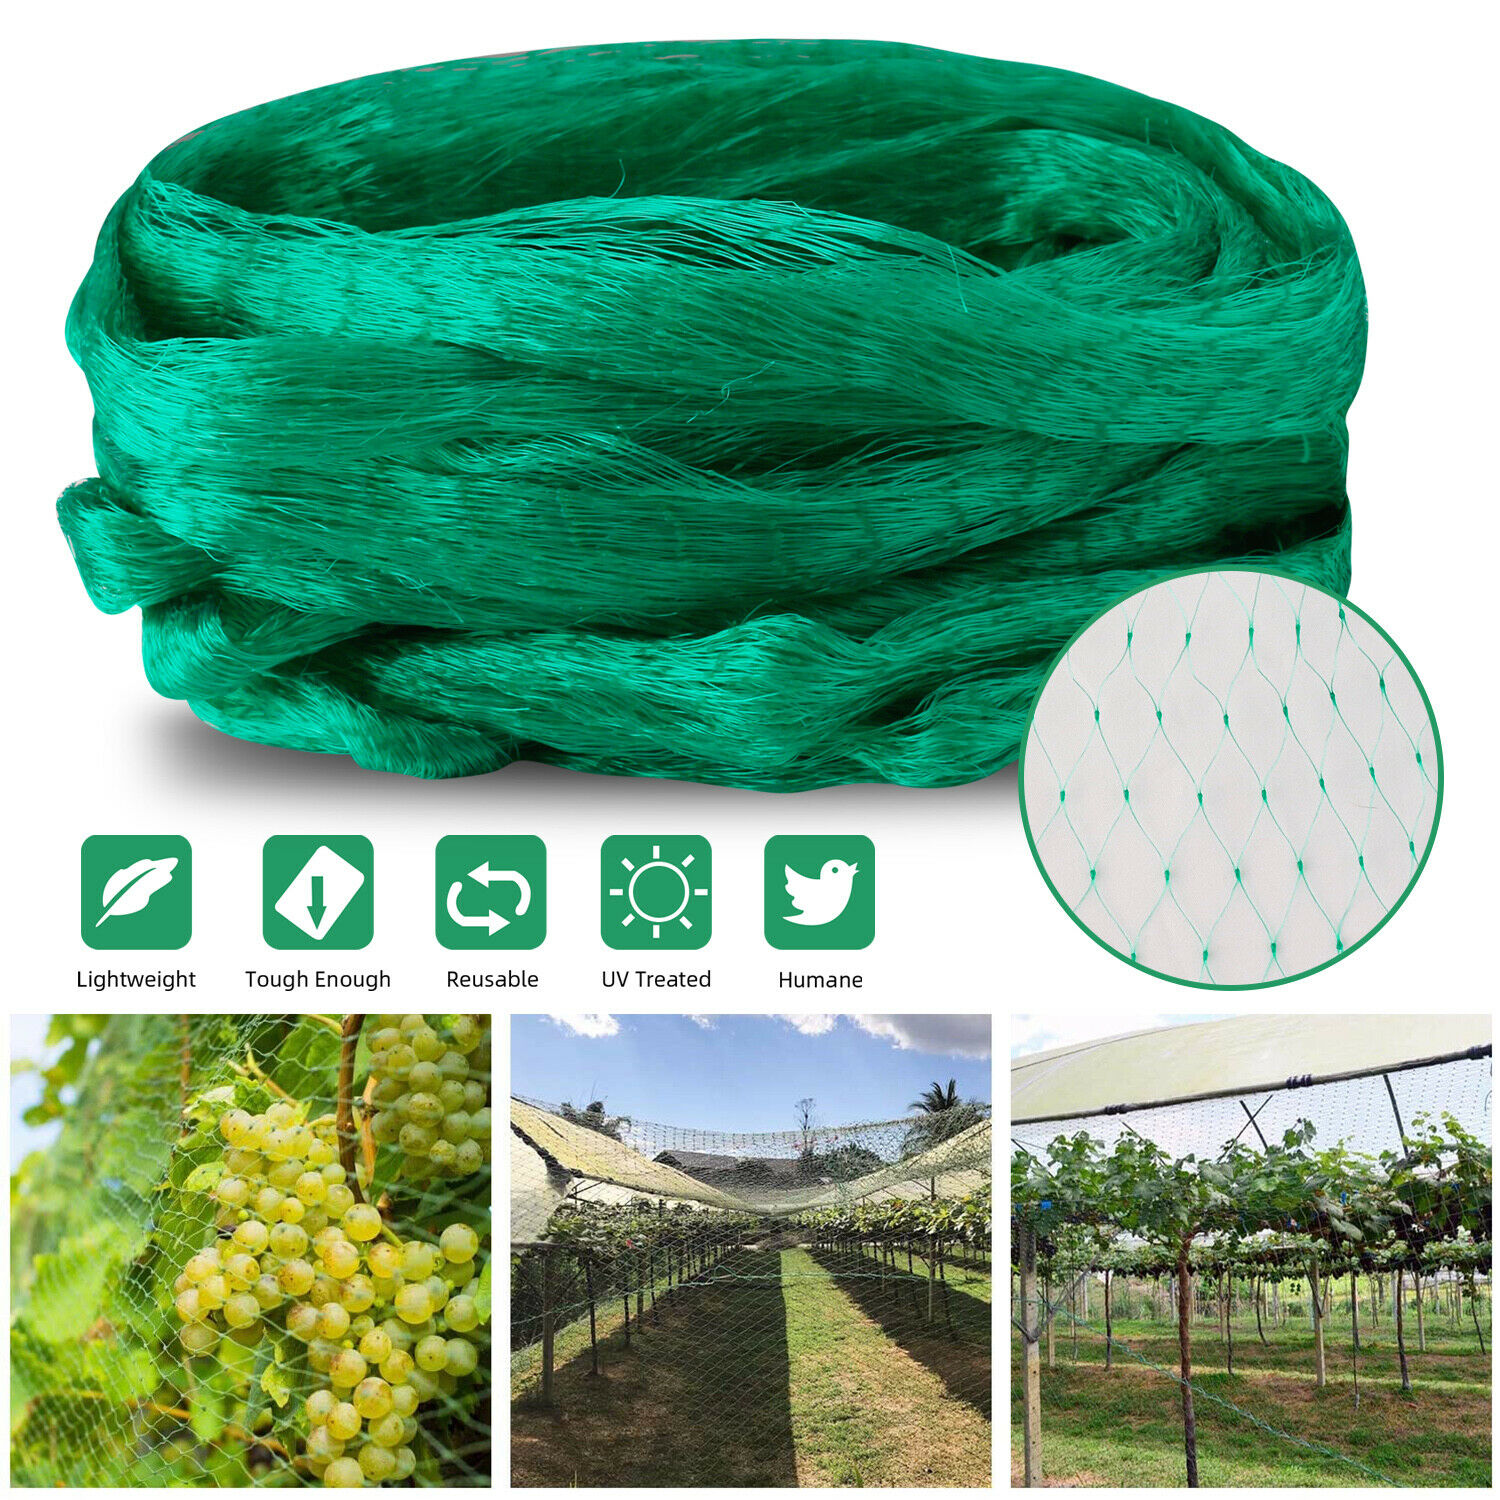 Mosquito Garden Bug Insect Netting Insect Barrier Bird Net Plant Protect Mesh Home & Garden